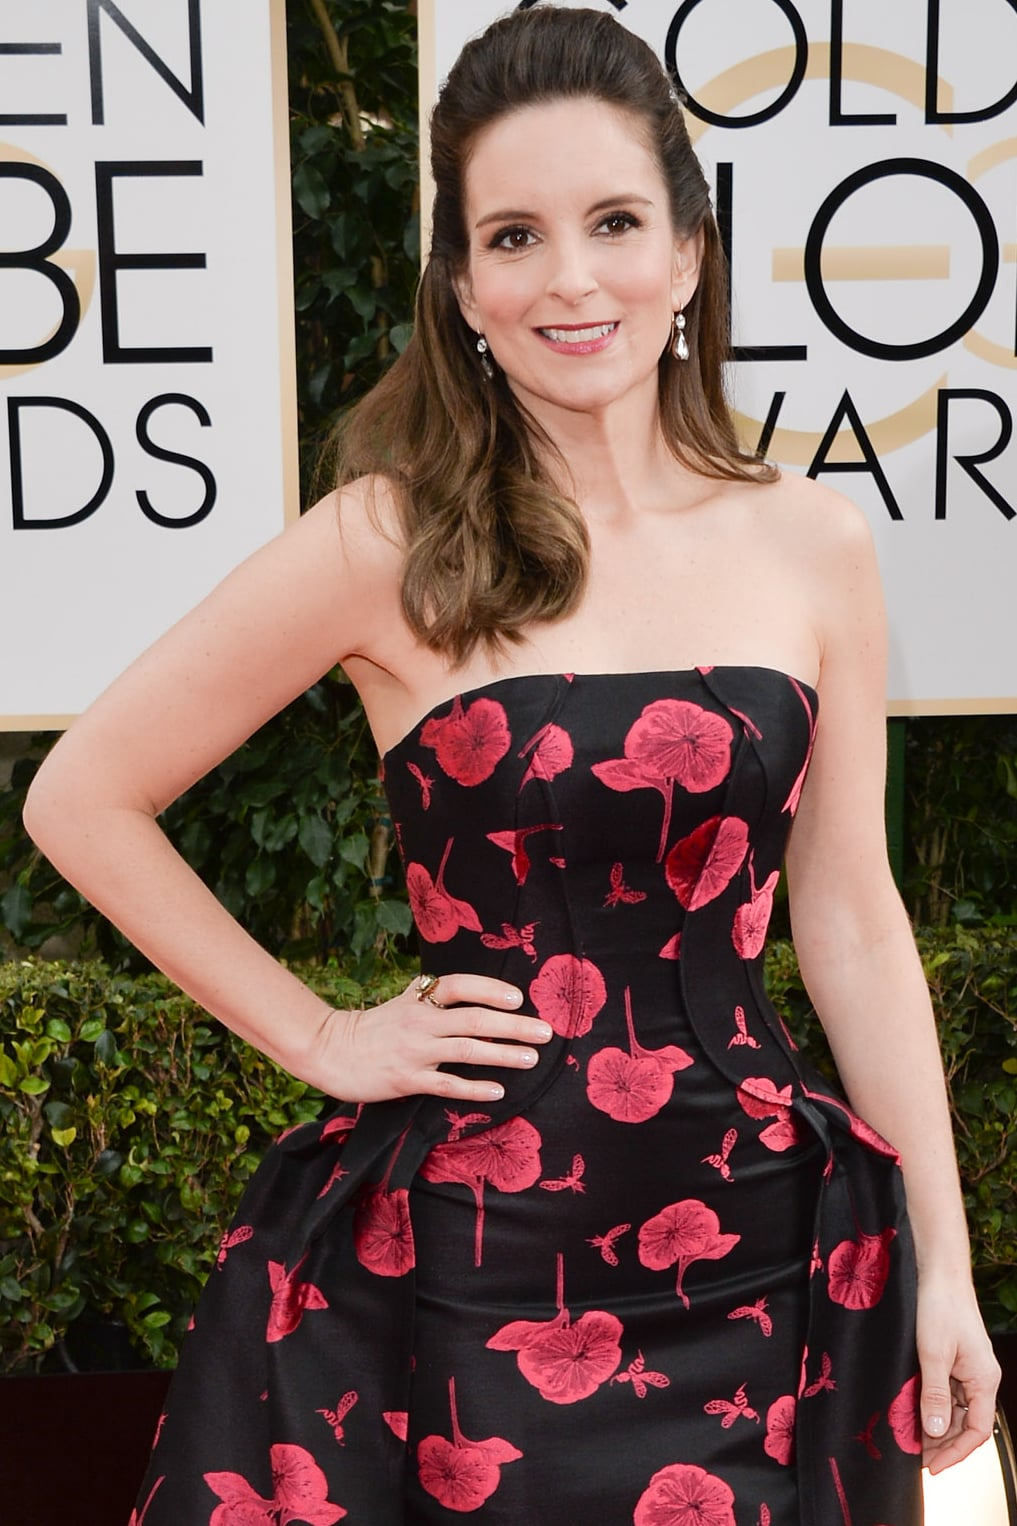 Tina Fey will join The Taliban Shuffle, an adaptation of journalist Kim Barker's memoir, The Taliban Shuffle: Strange Days in Afghanistan and Pakistan. Lorne Michaels is producing, and the script is penned by 30 Rock's Robert Carlock.